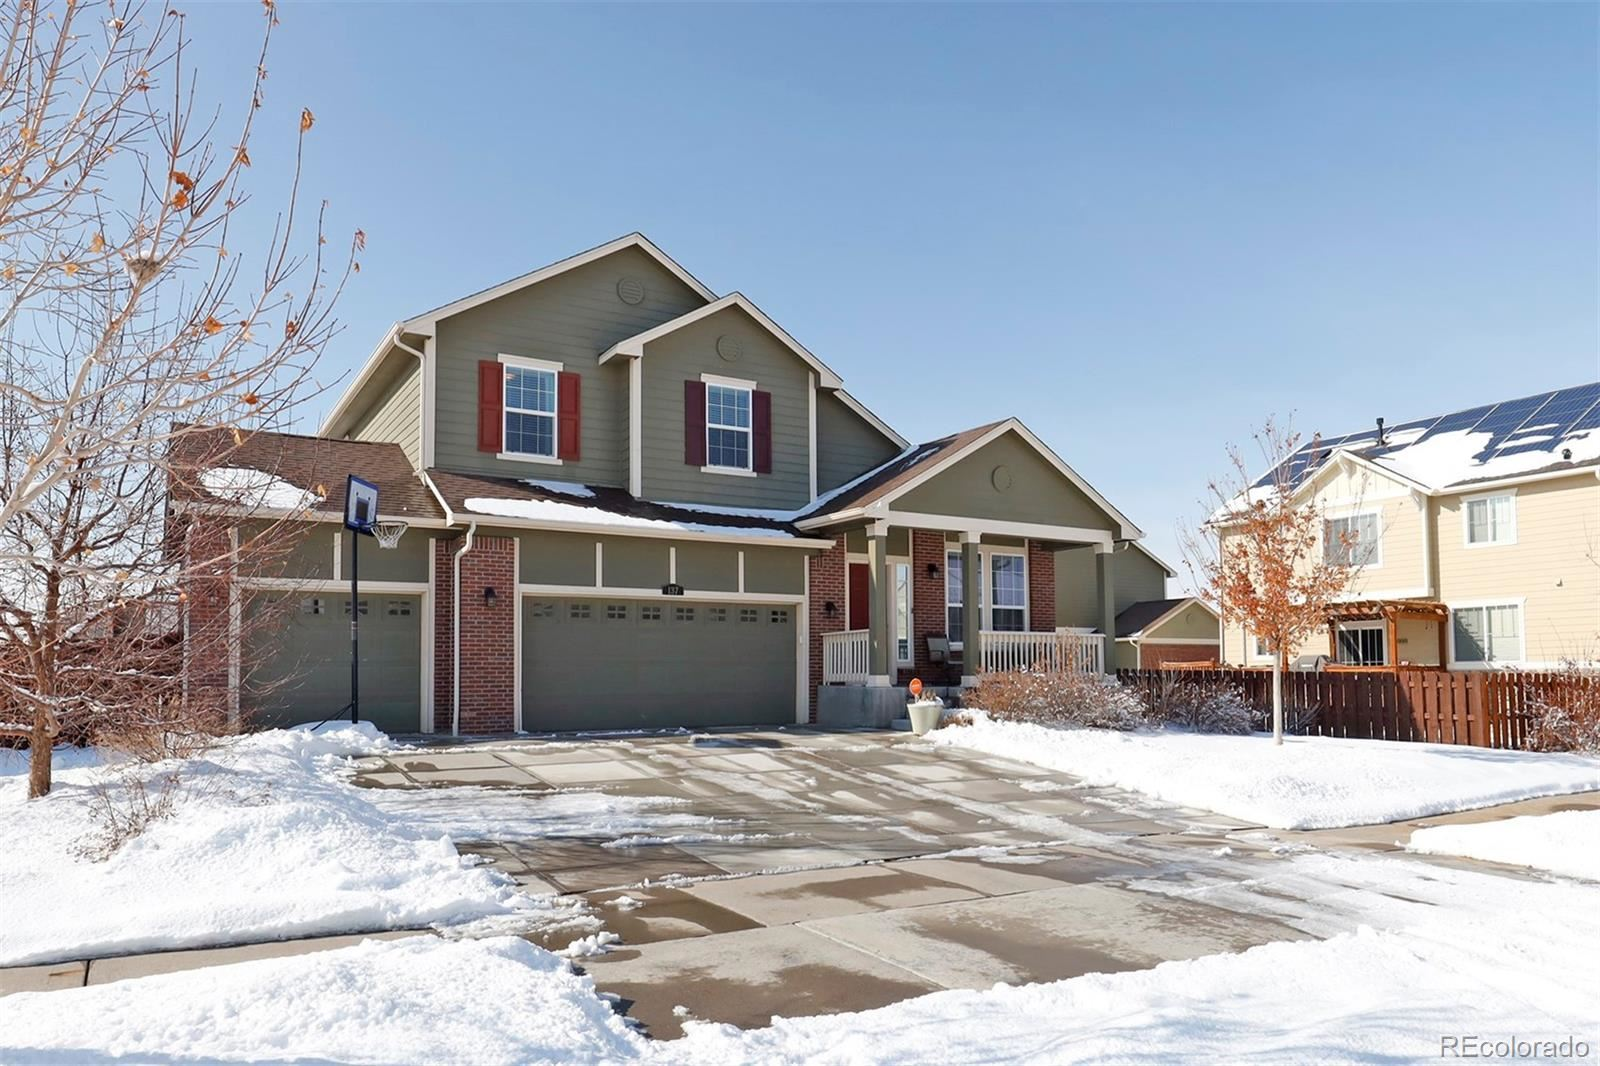 137 S Newbern Court, Aurora, CO 80018 - #: 2217078